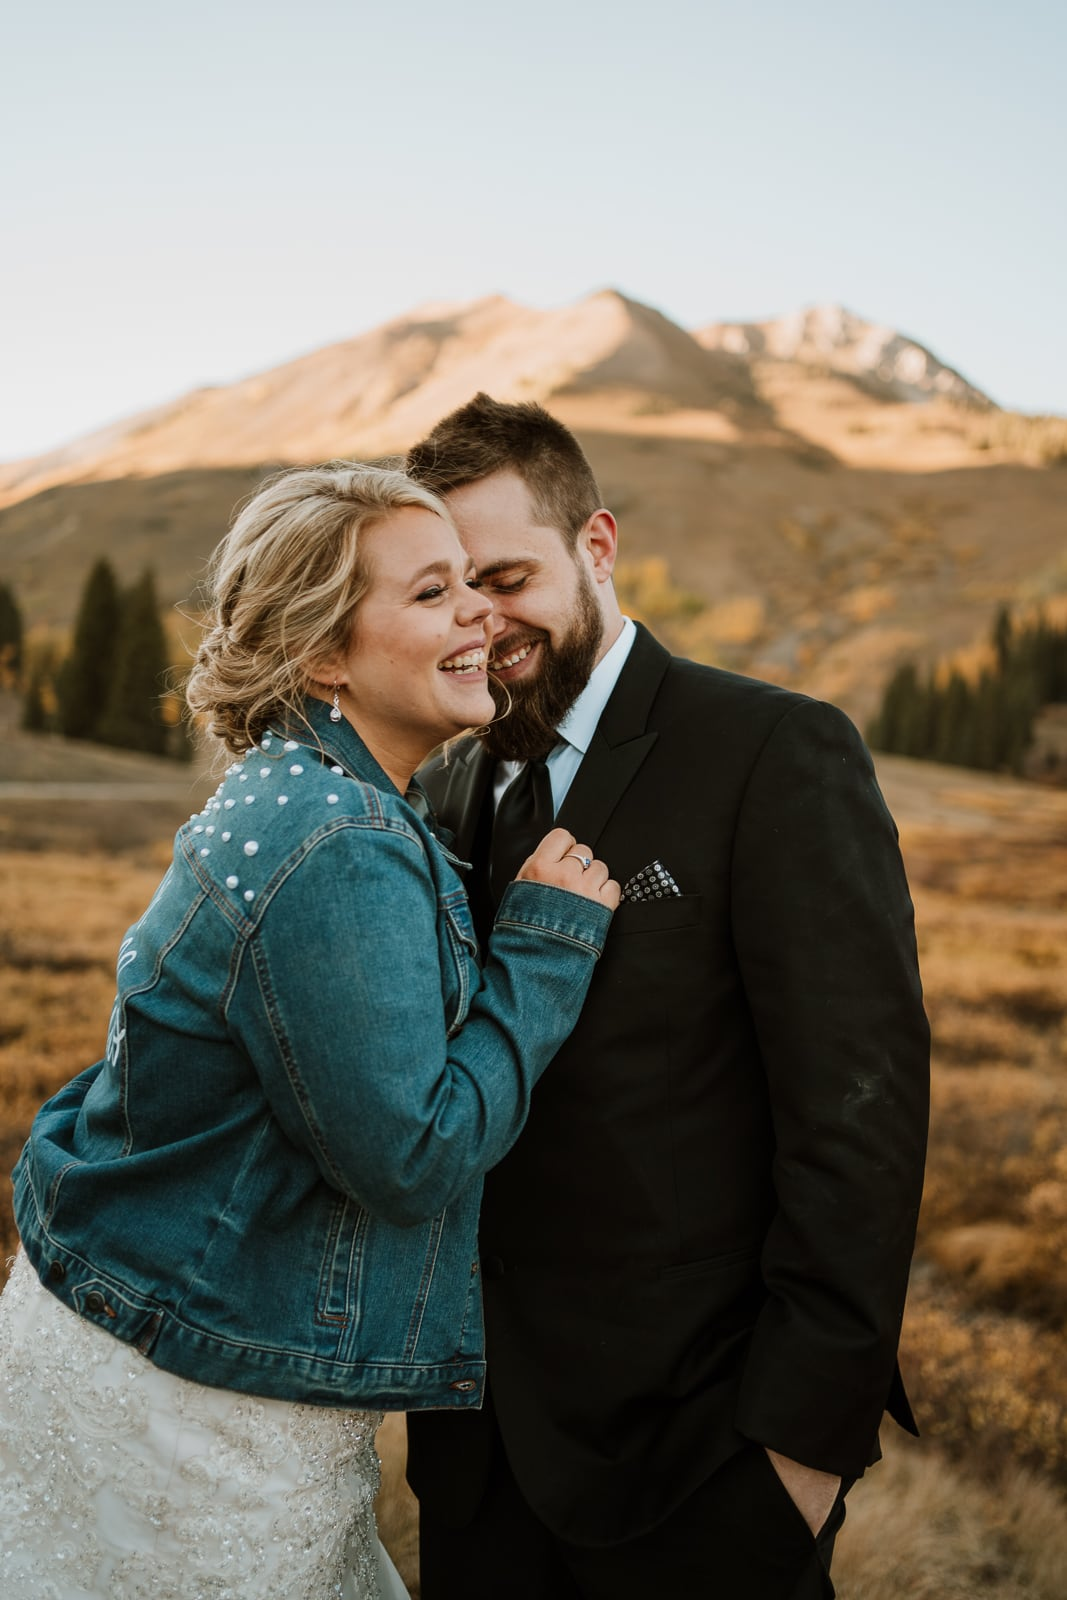 Bride and groom laugh and giggle during their first dance at their sunset Crested Butte elopement